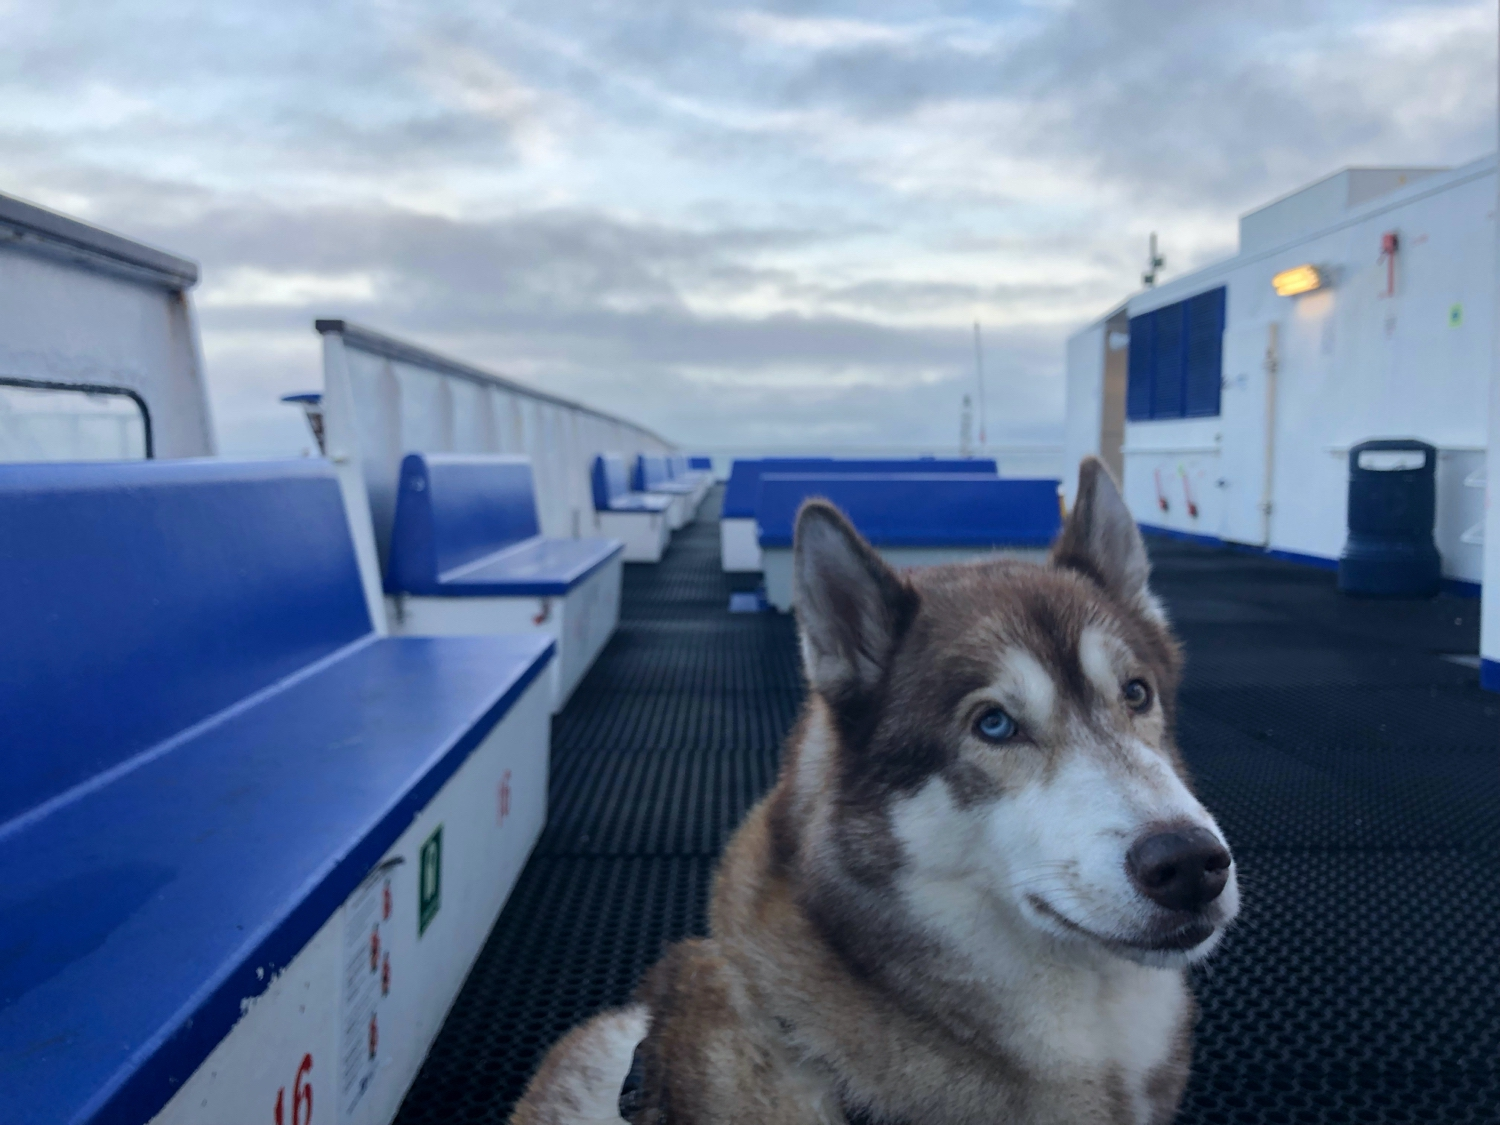 Oskar on the top deck of a ferry, looking fed up at the camera.